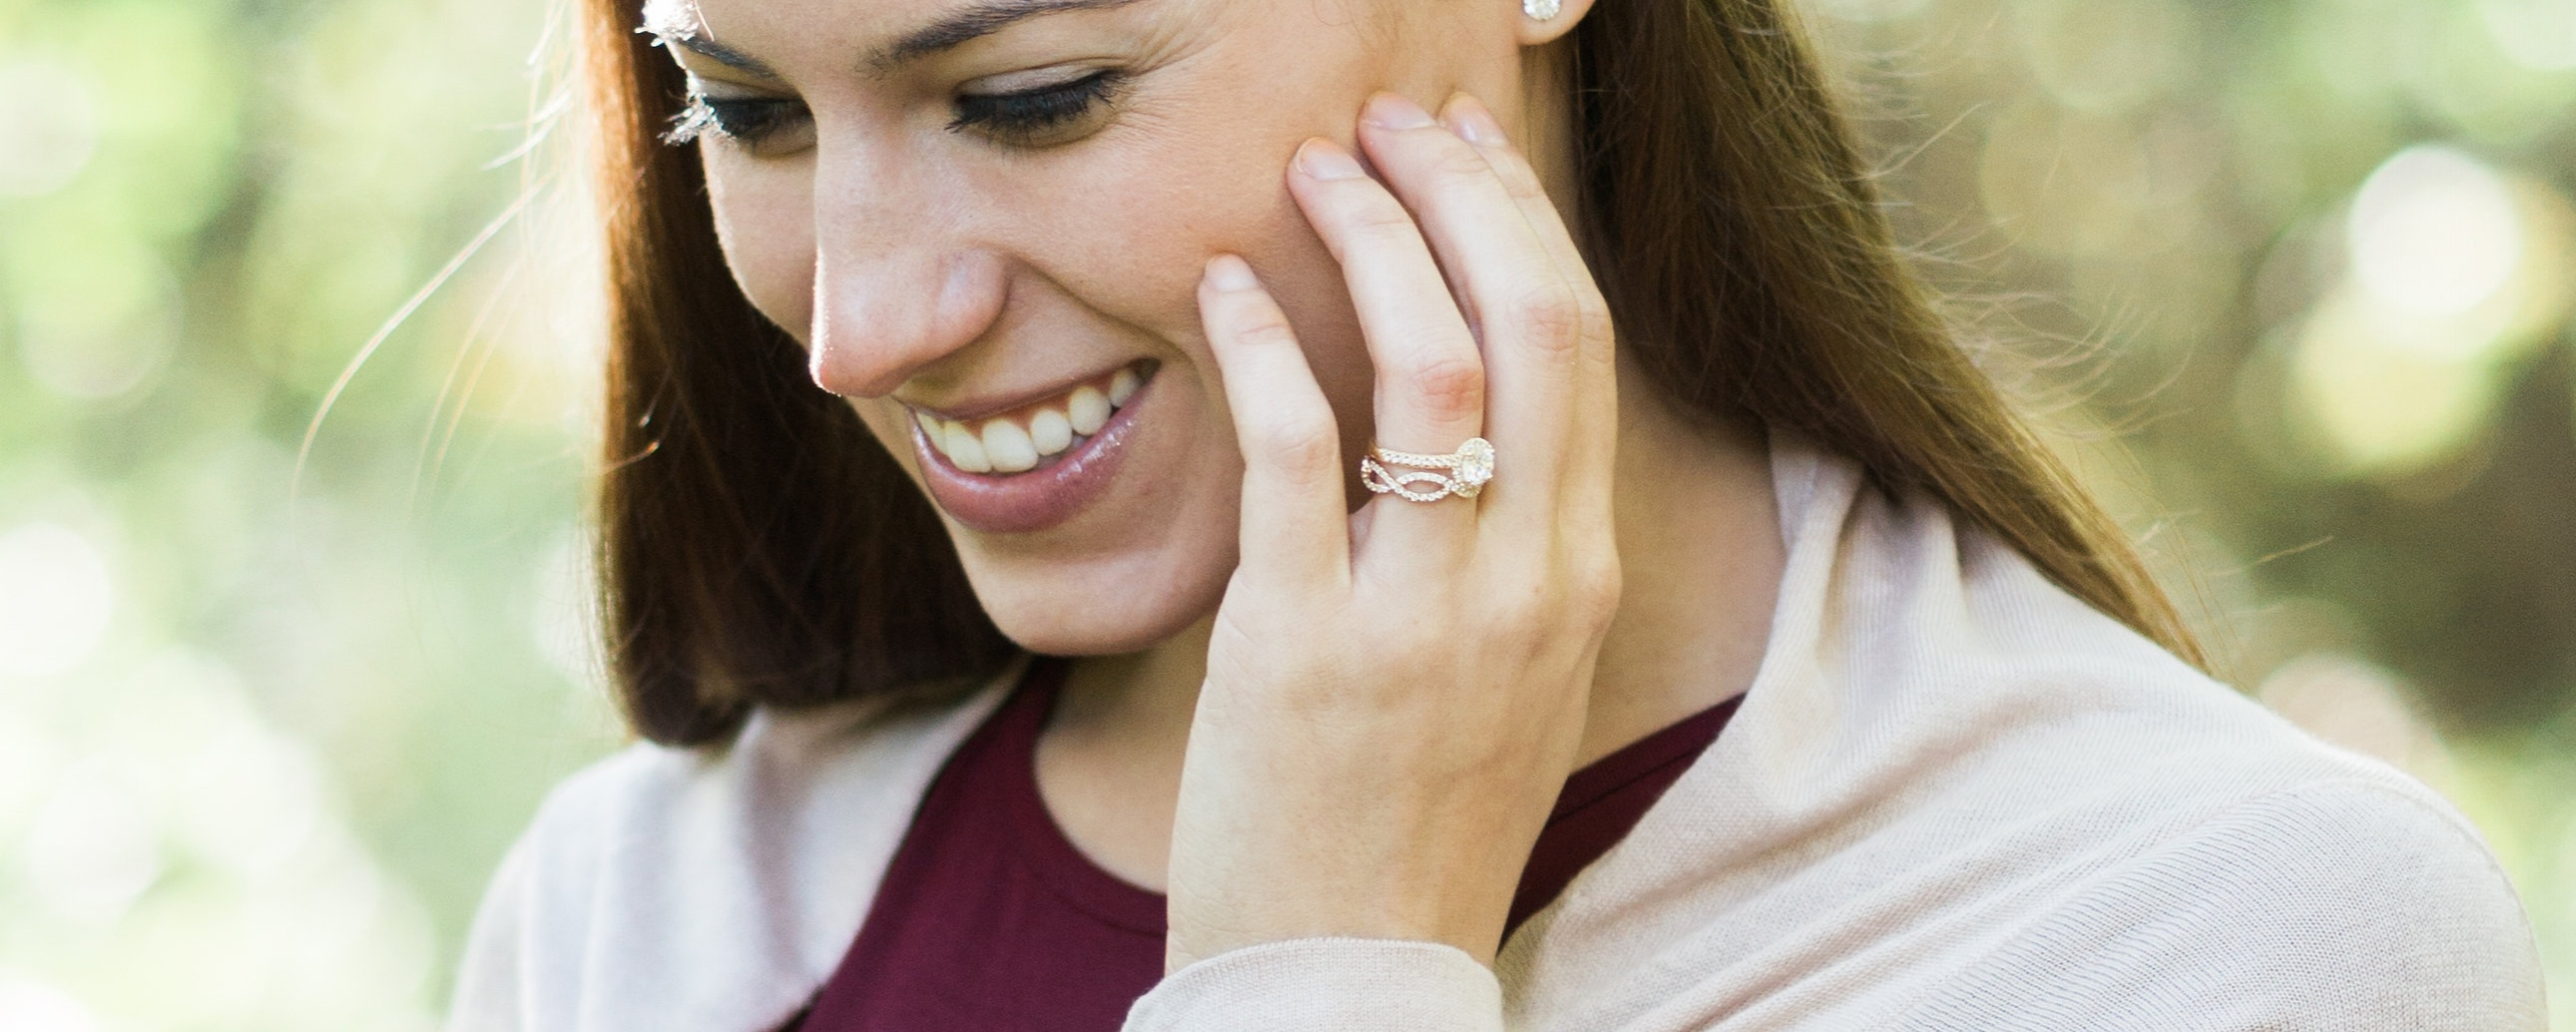 4 Effective Ways To Find A Ring Size At Home